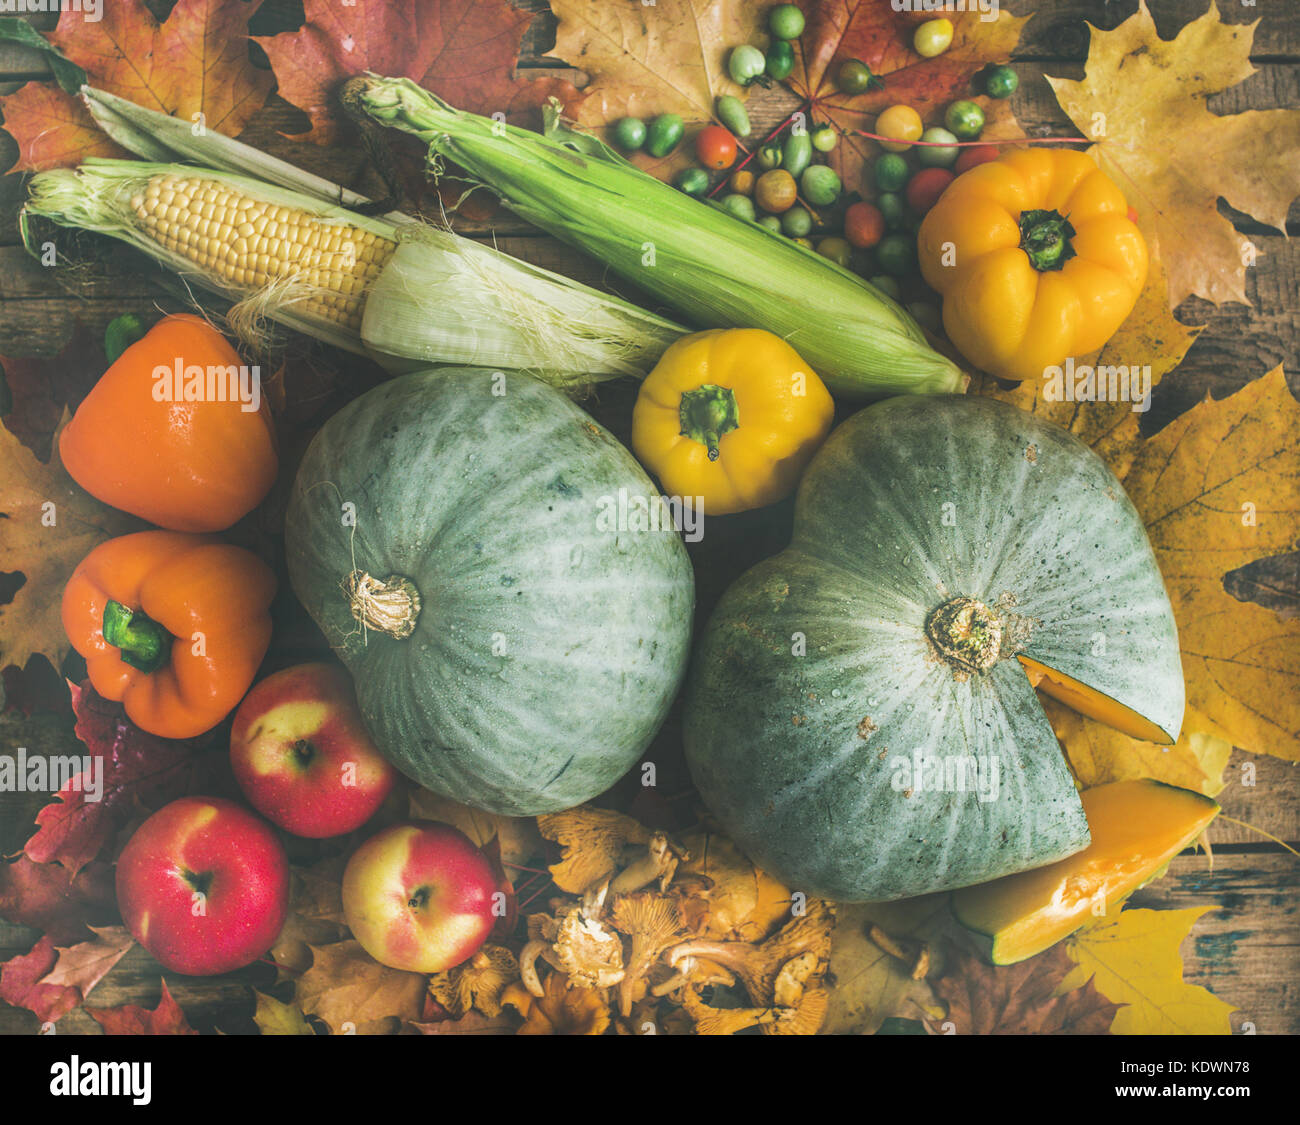 Fall vegetables assortment over wooden table background, top view Stock Photo